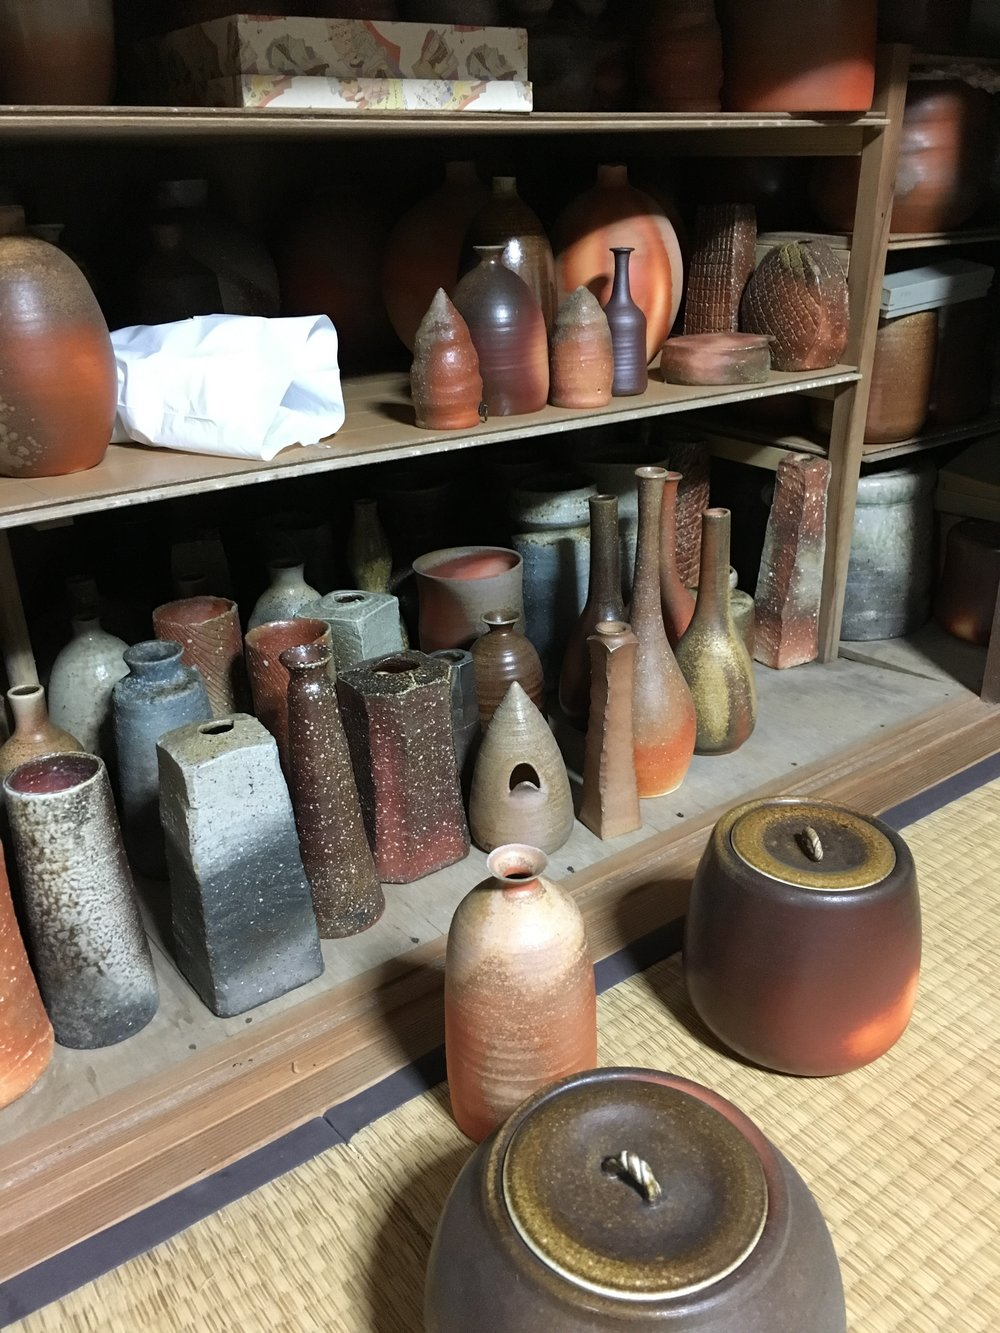 Local and very talented potter showed us his Shigaraki wares.